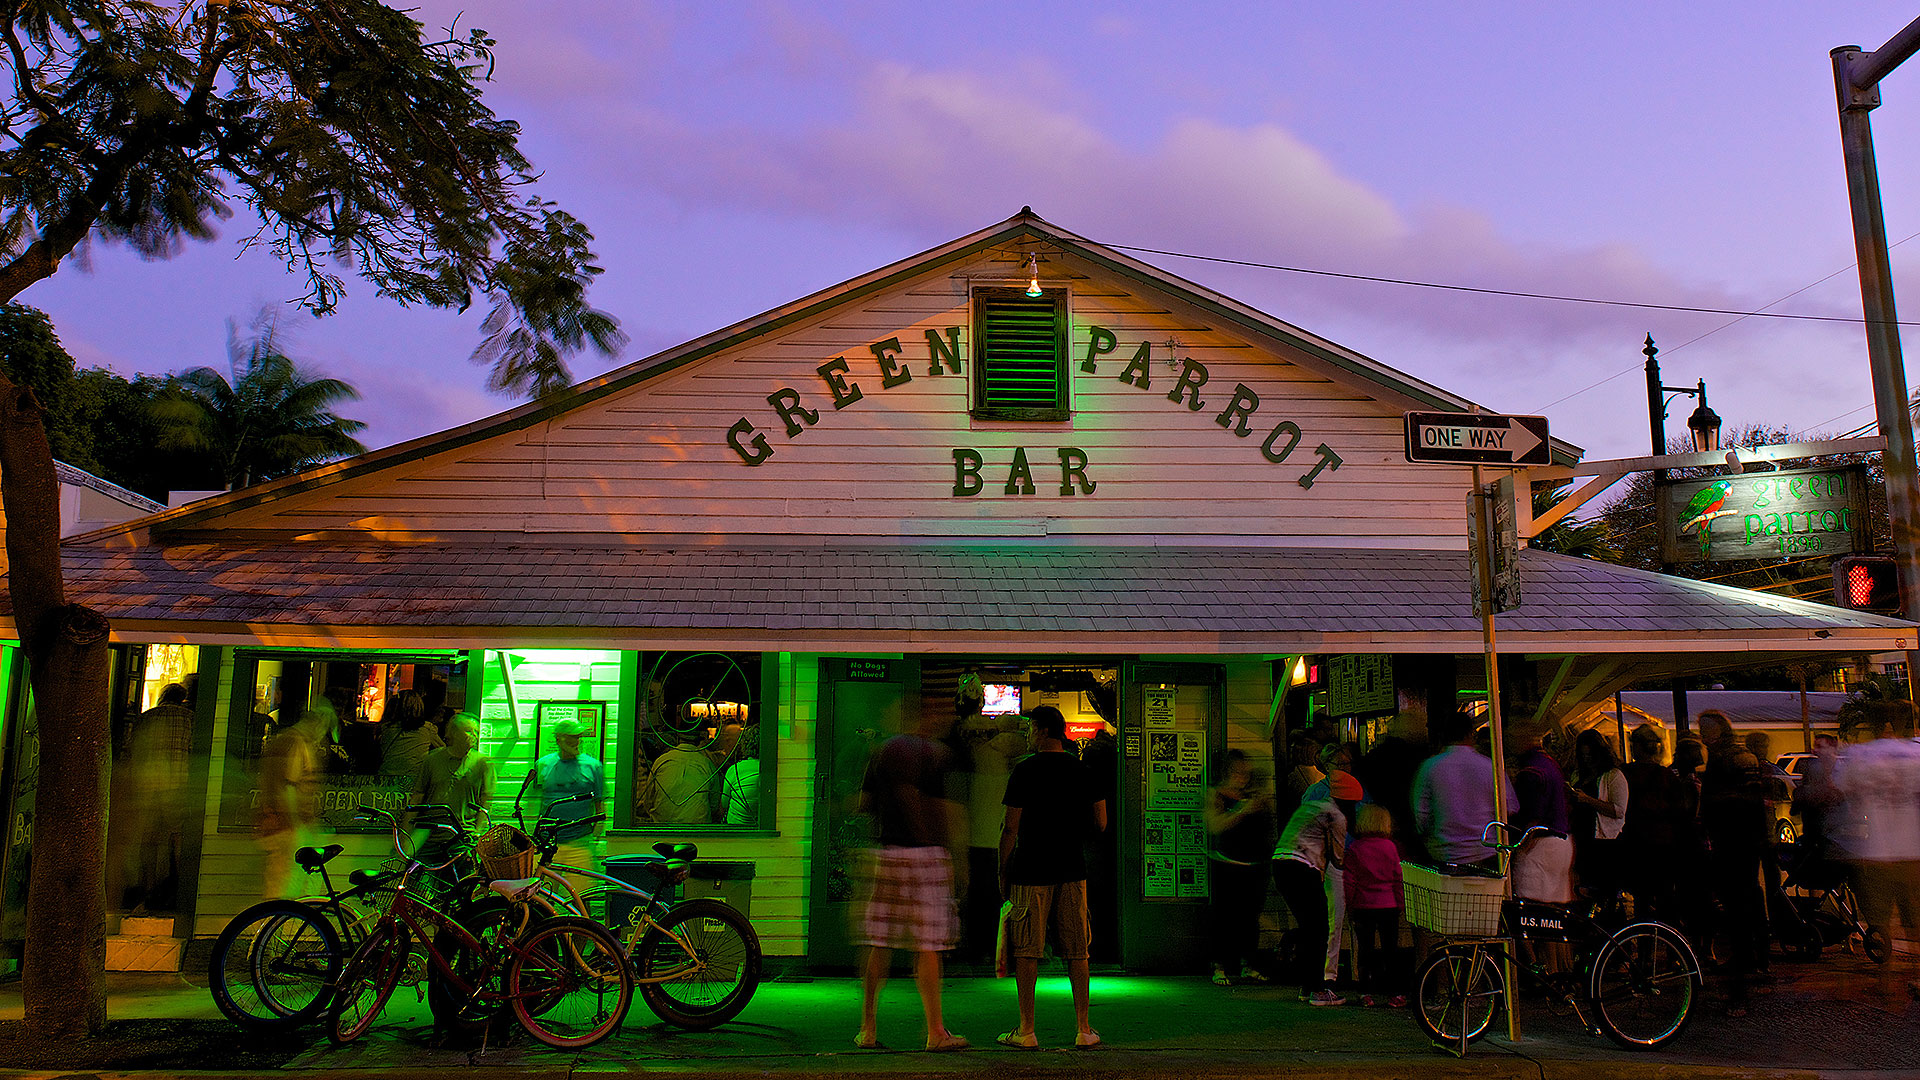 picture of green parrot bar exterior of building at night